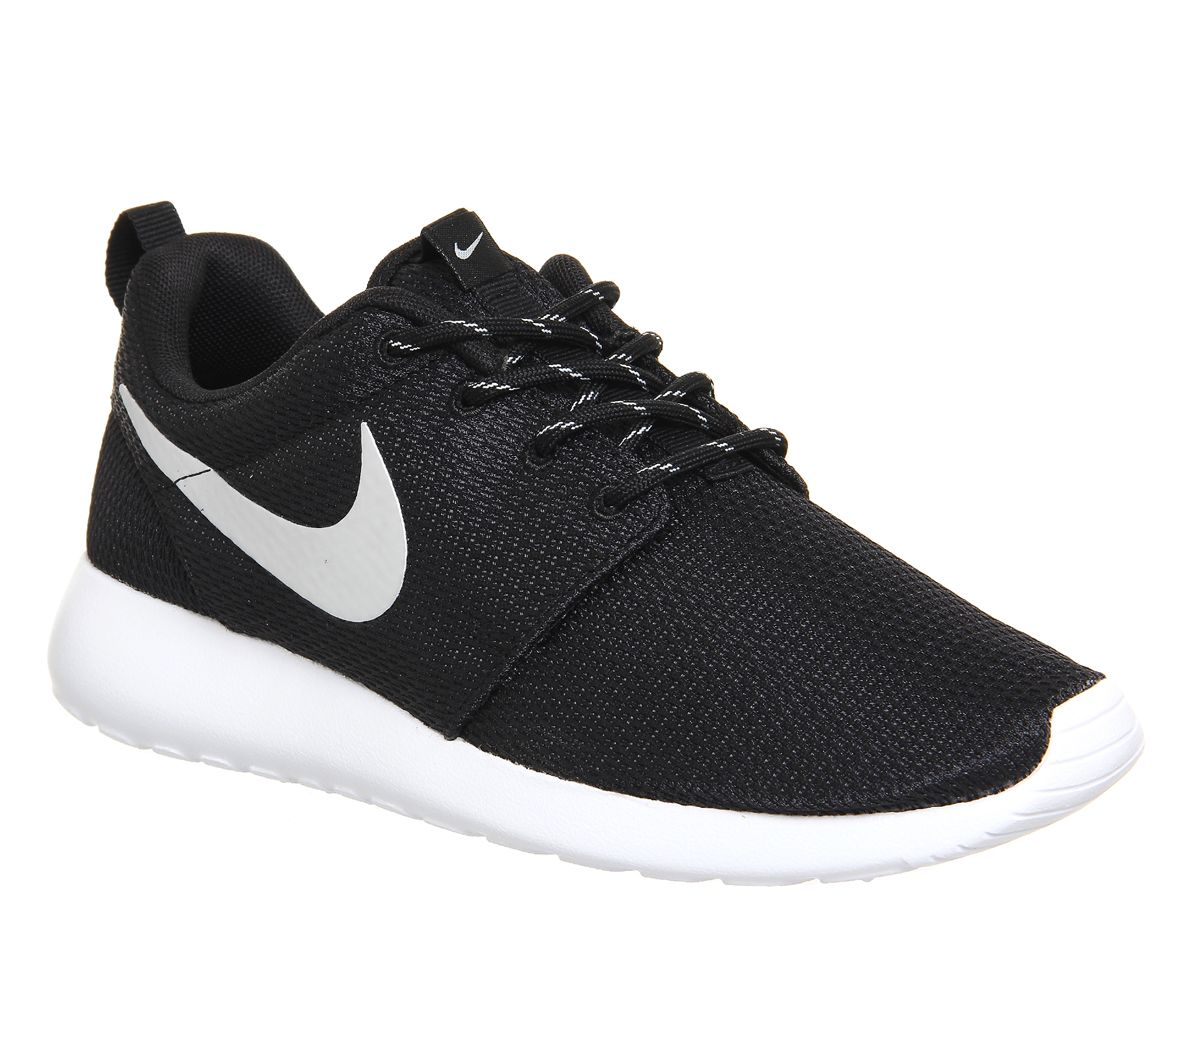 59e4e8922dfc Buy Black Metallic White Nike Roshe Run from OFFICE.co.uk.